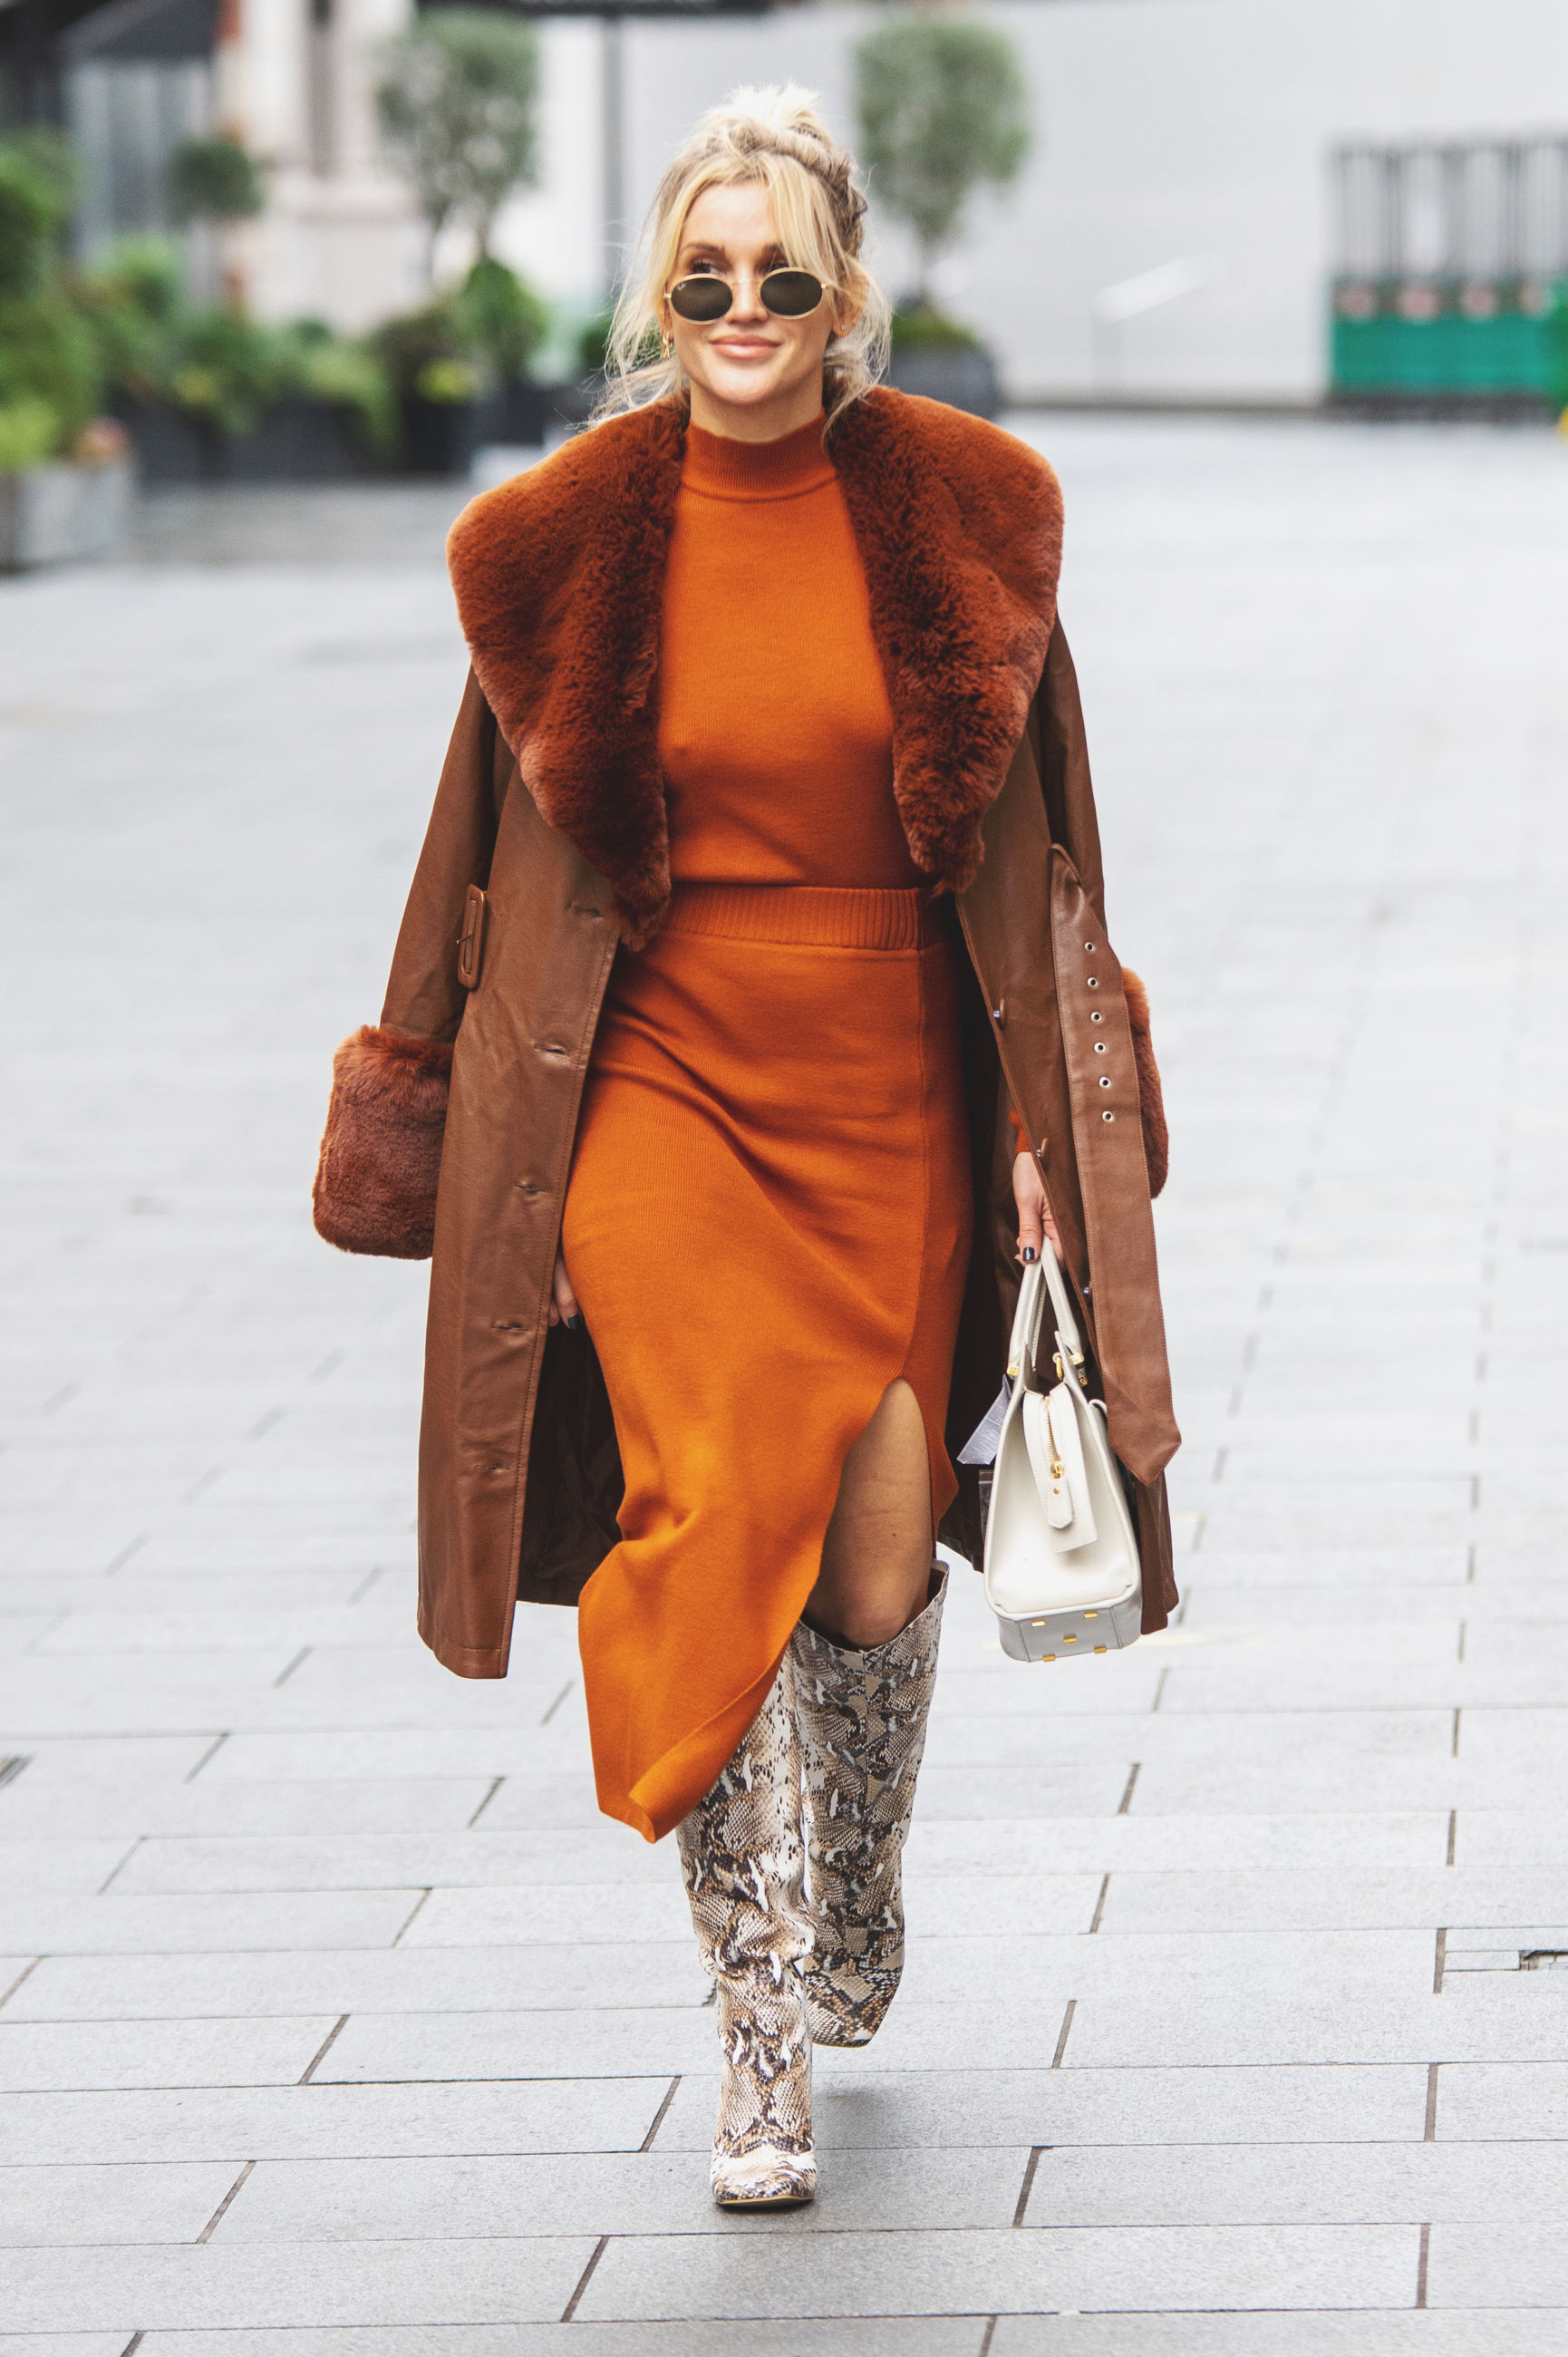 adult, fashion, clothing, one person, women, city, architecture, walking, coat, portrait, street, full length, city life, footpath, young adult, smiling, lifestyles, bag, spring, happiness, footwear, outerwear, female, front view, elegance, outdoors, trench coat, day, dress, looking at camera, standing, yellow, arts culture and entertainment, nature, sidewalk, casual clothing, hairstyle, emotion